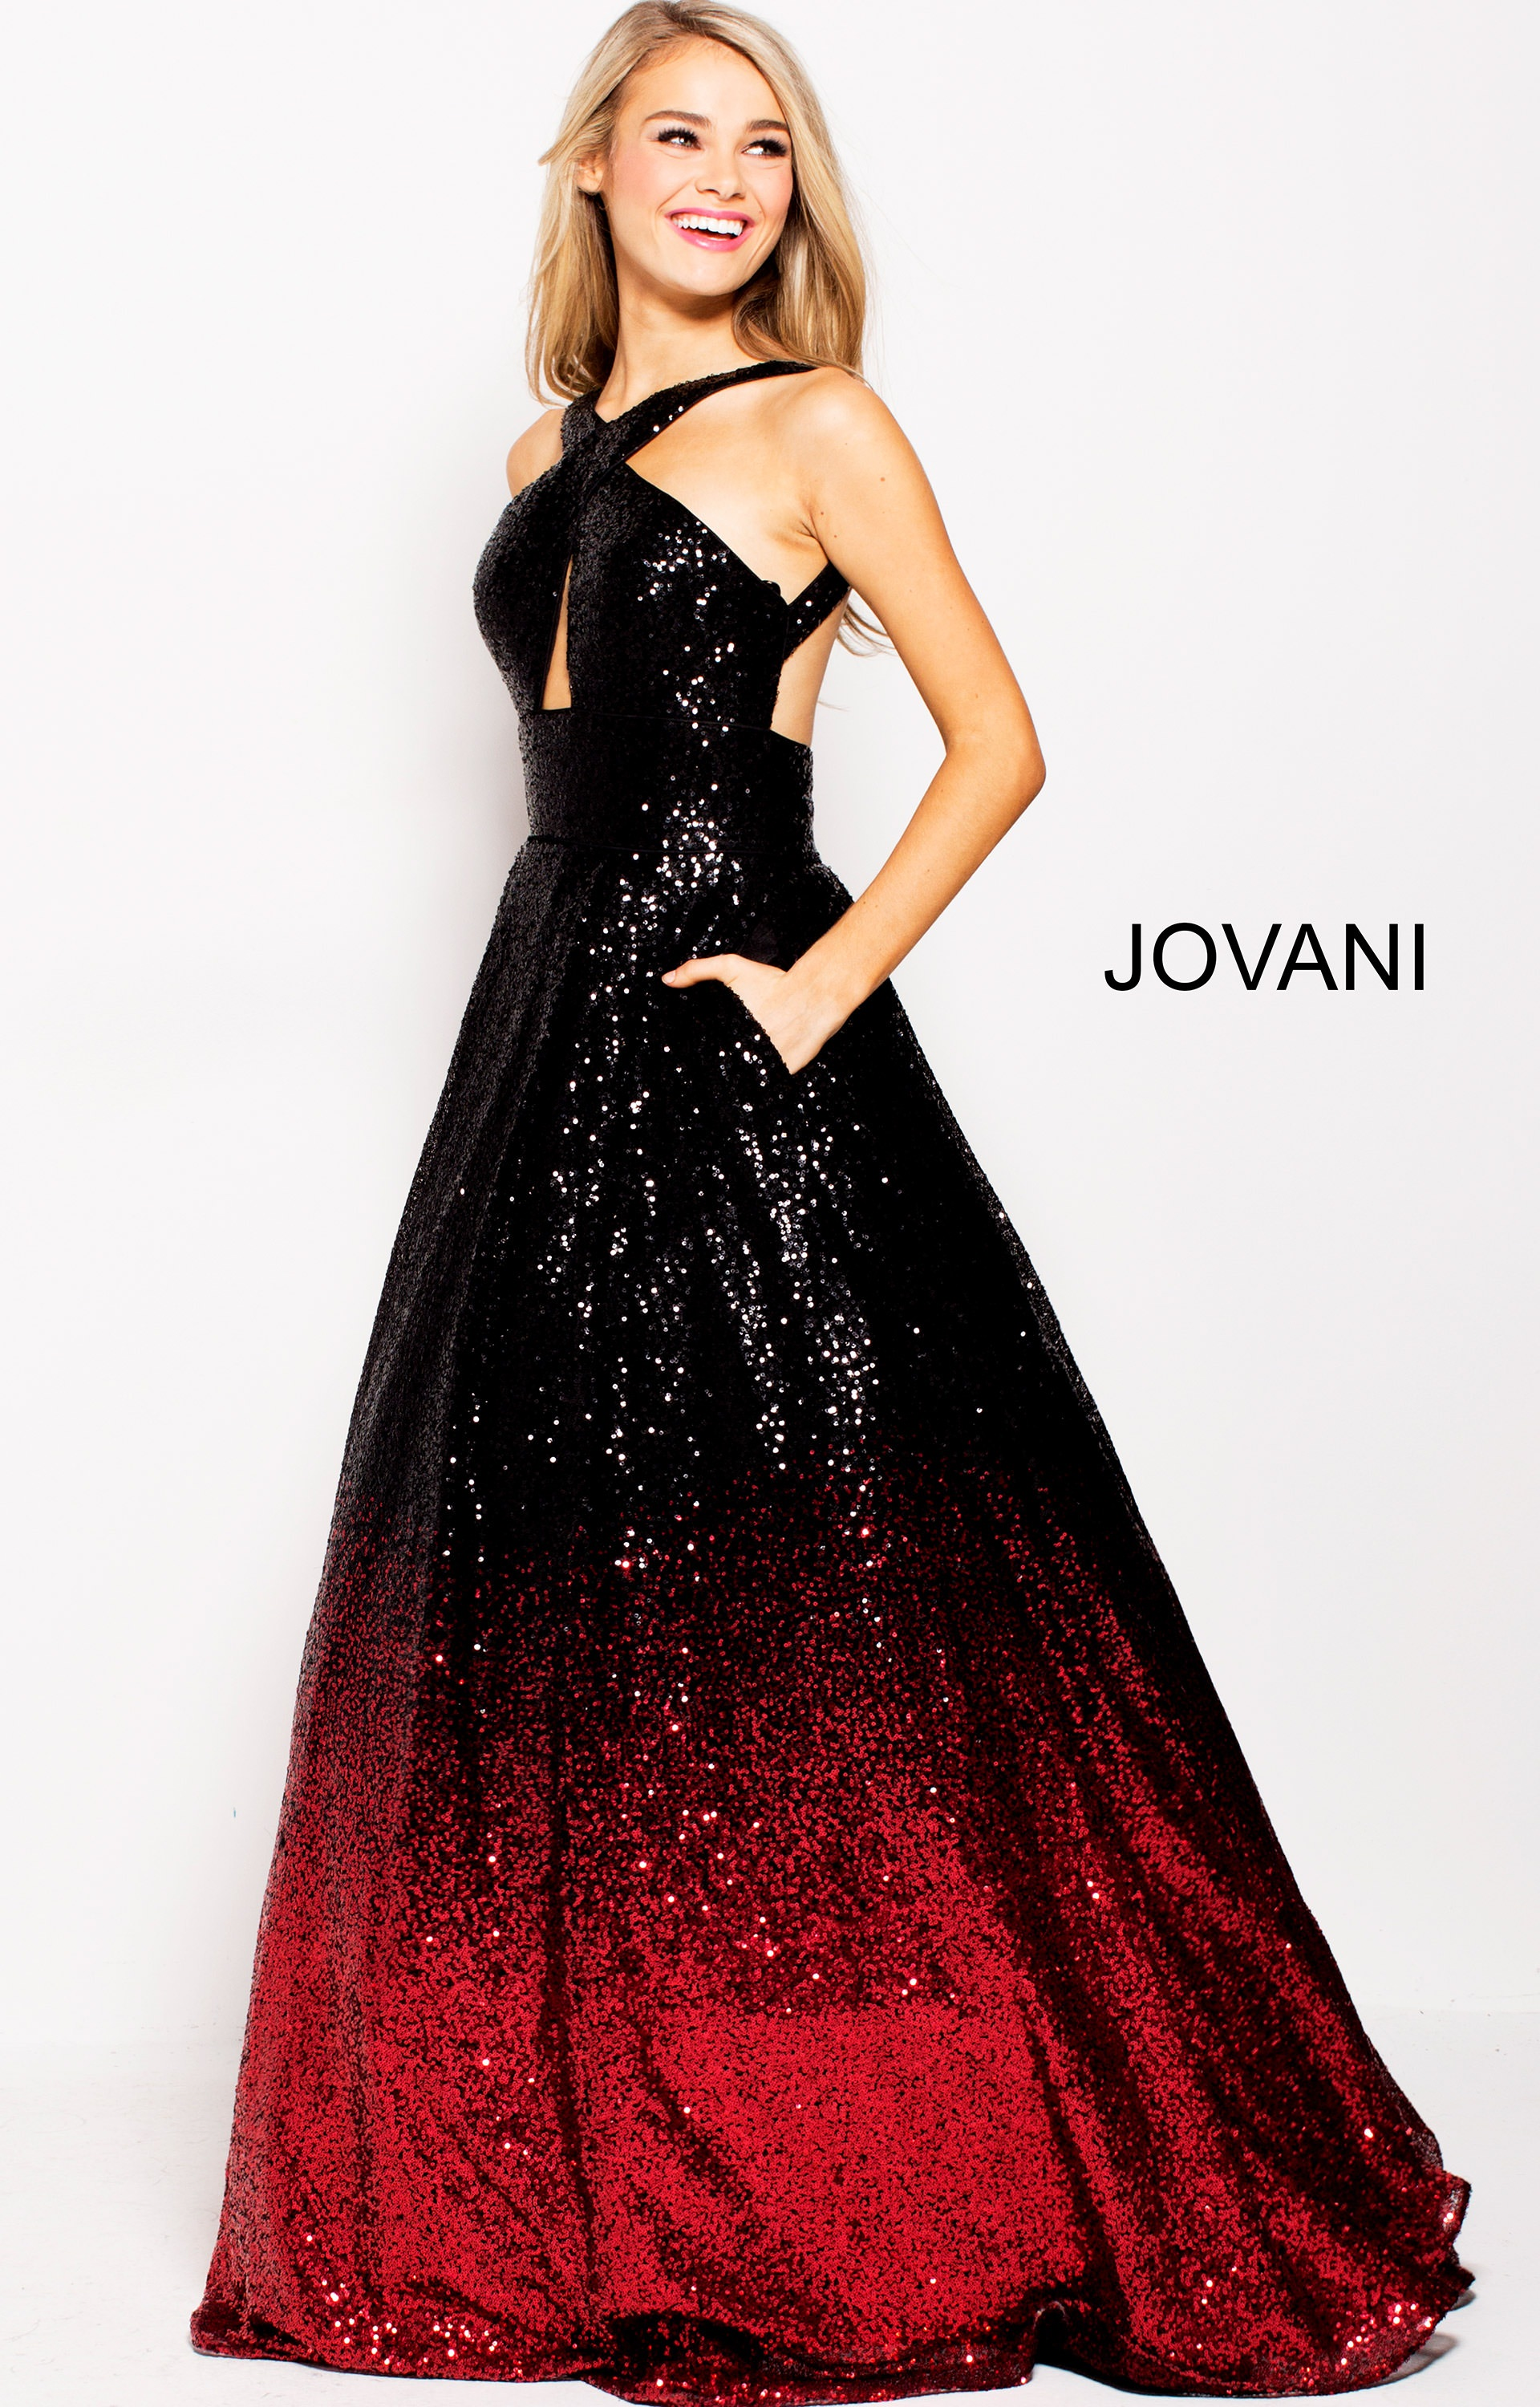 Jovani 60270 - Sparkling Sequin Open Back Ball Gown Dress Prom Dress